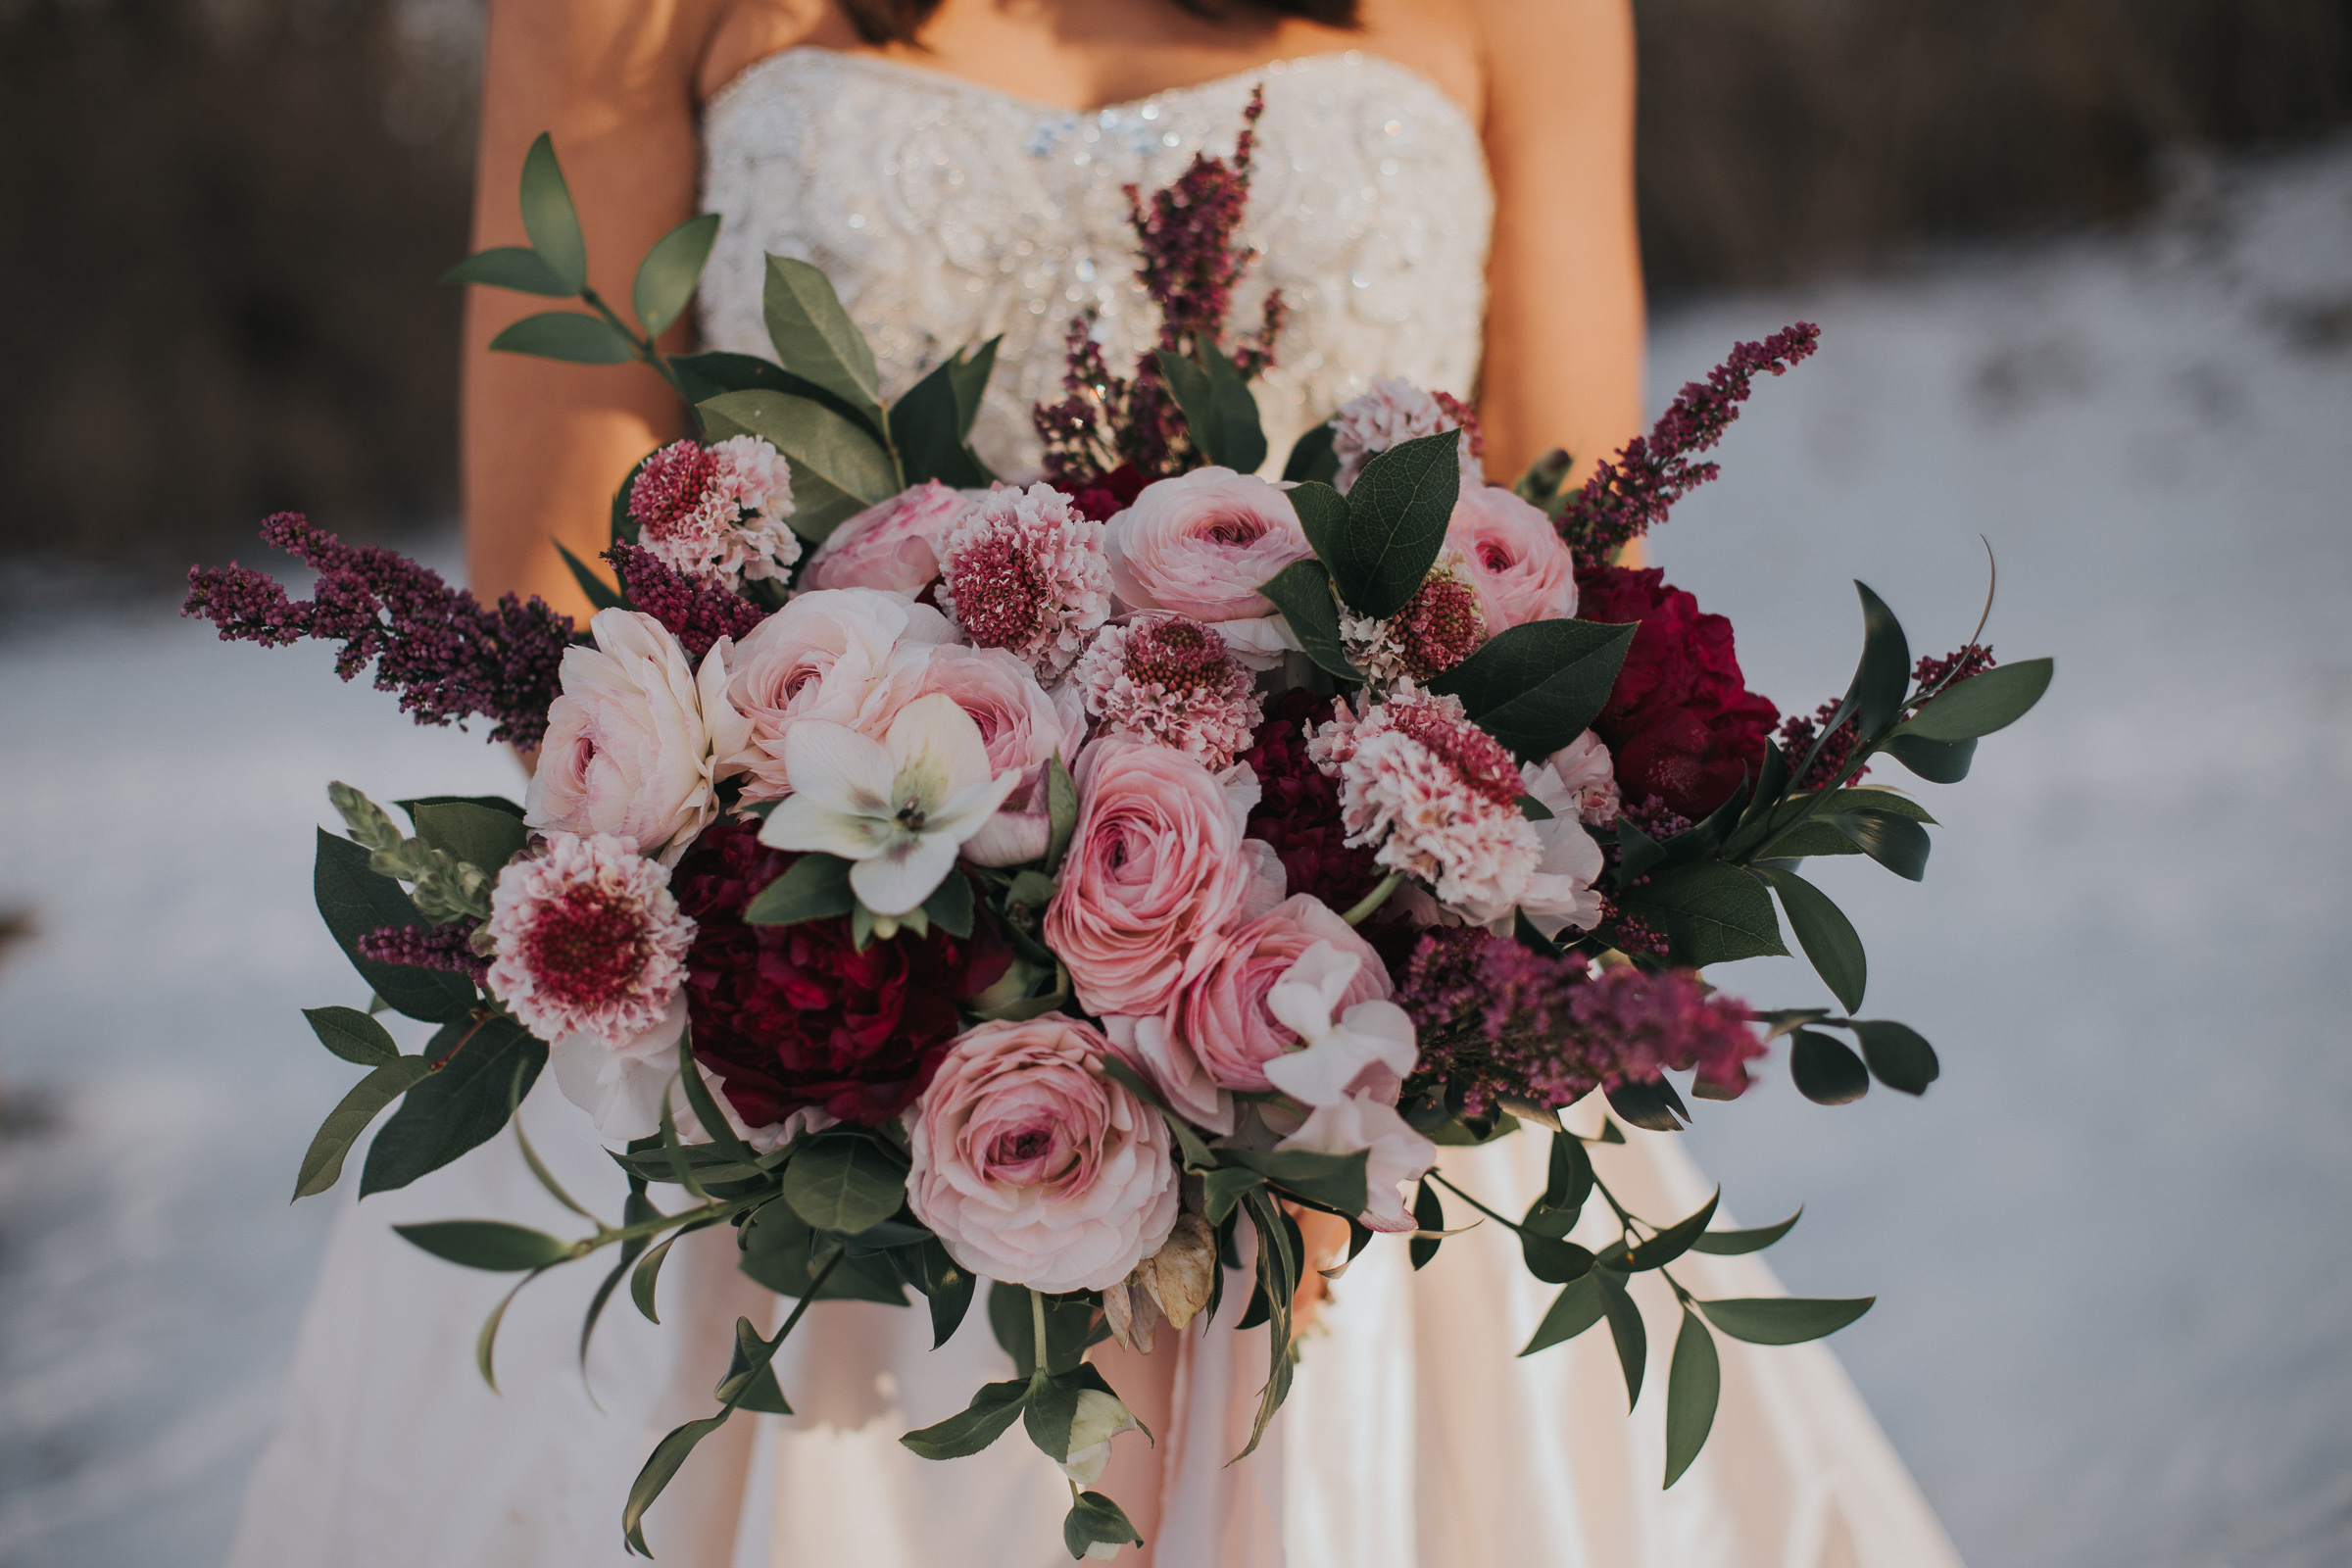 Organic garden bouquet  Style: romantic, wispy Details: Clooney ranunculus, hellebore, scabiosa, burgundy peonies, heather, ruscus, salal   {Photo courtesy of    Morgan Barrett   }